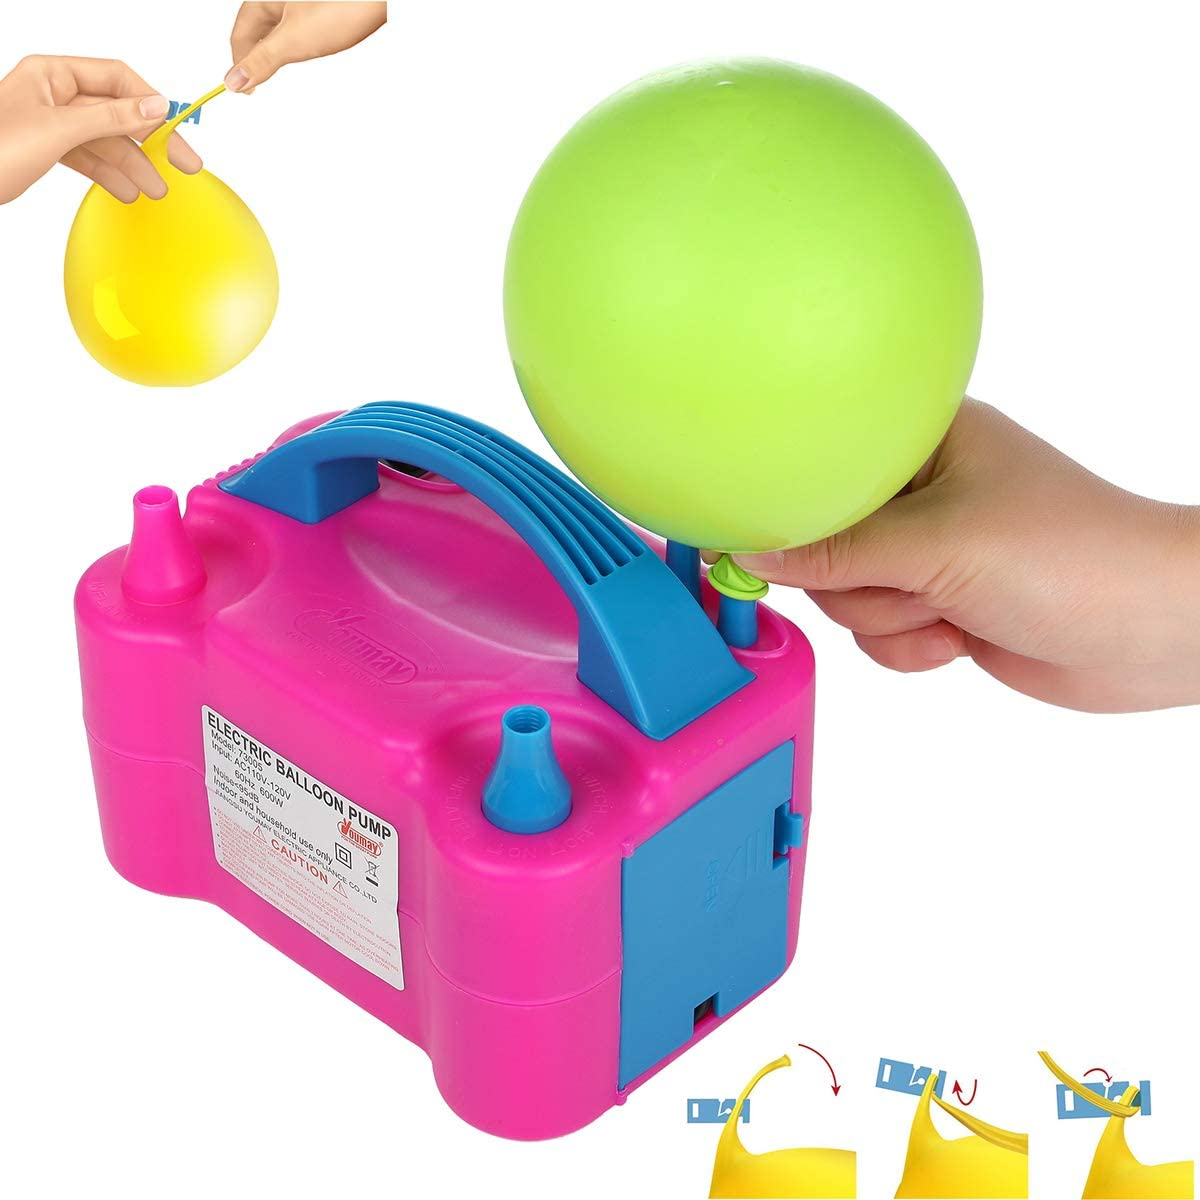 Amazon.com: Party Zealot Electric Balloon Inflator with 100 Balloon Ties Air  Pump Dual Nozzles Balloons Blower US Standard Plug for Balloon Arch, Balloon  Column Stand, and Balloon Decoration: Toys & Games